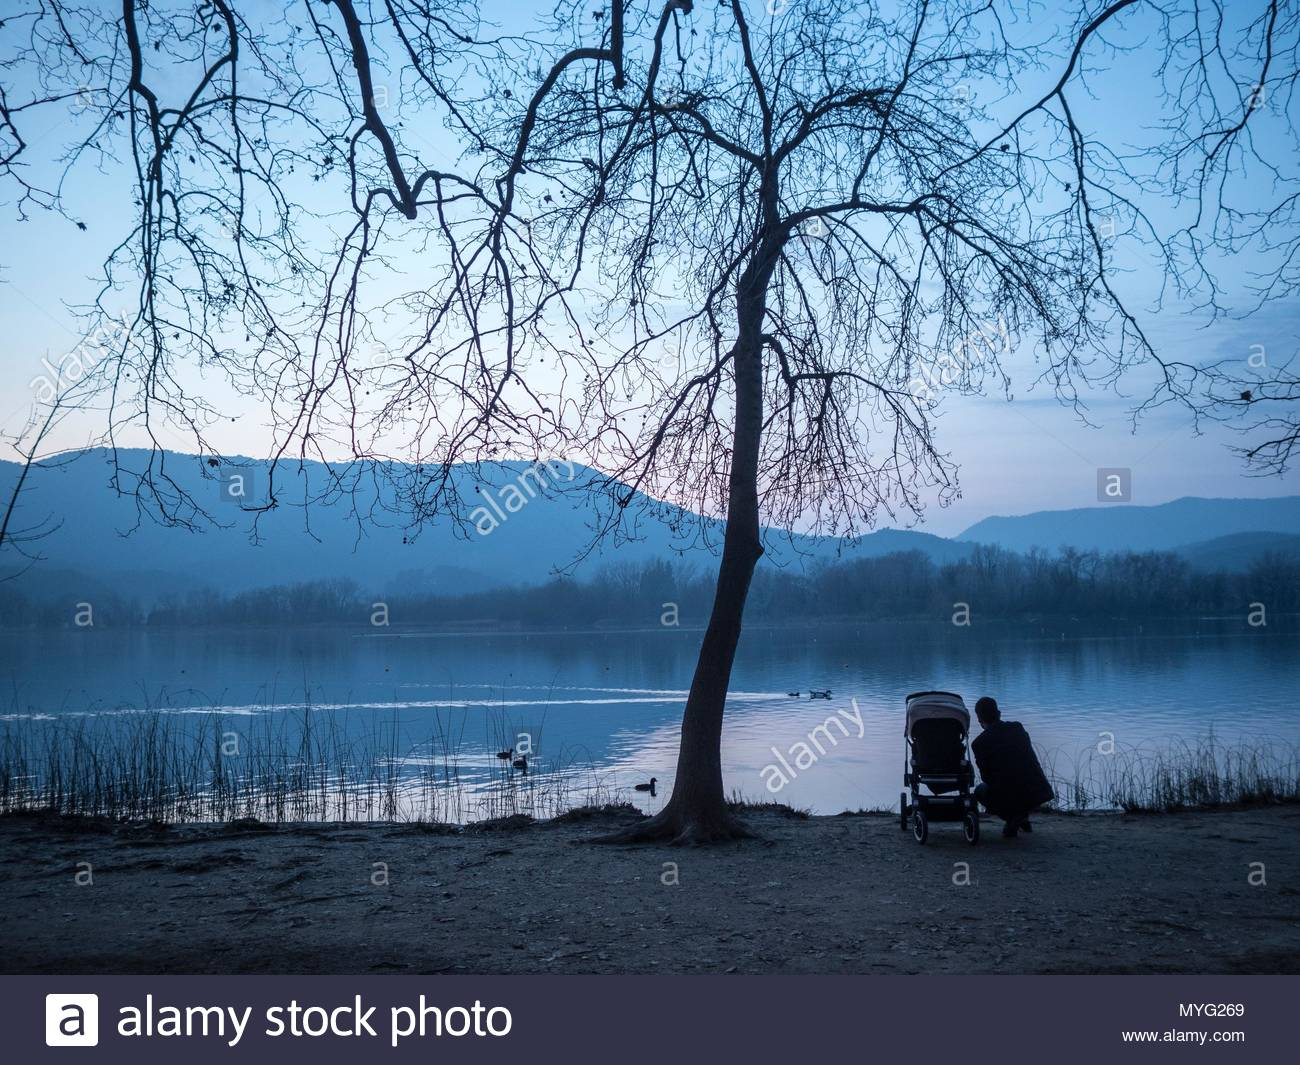 A parent with a baby stroller await sunset at the lake shore. - Stock Image